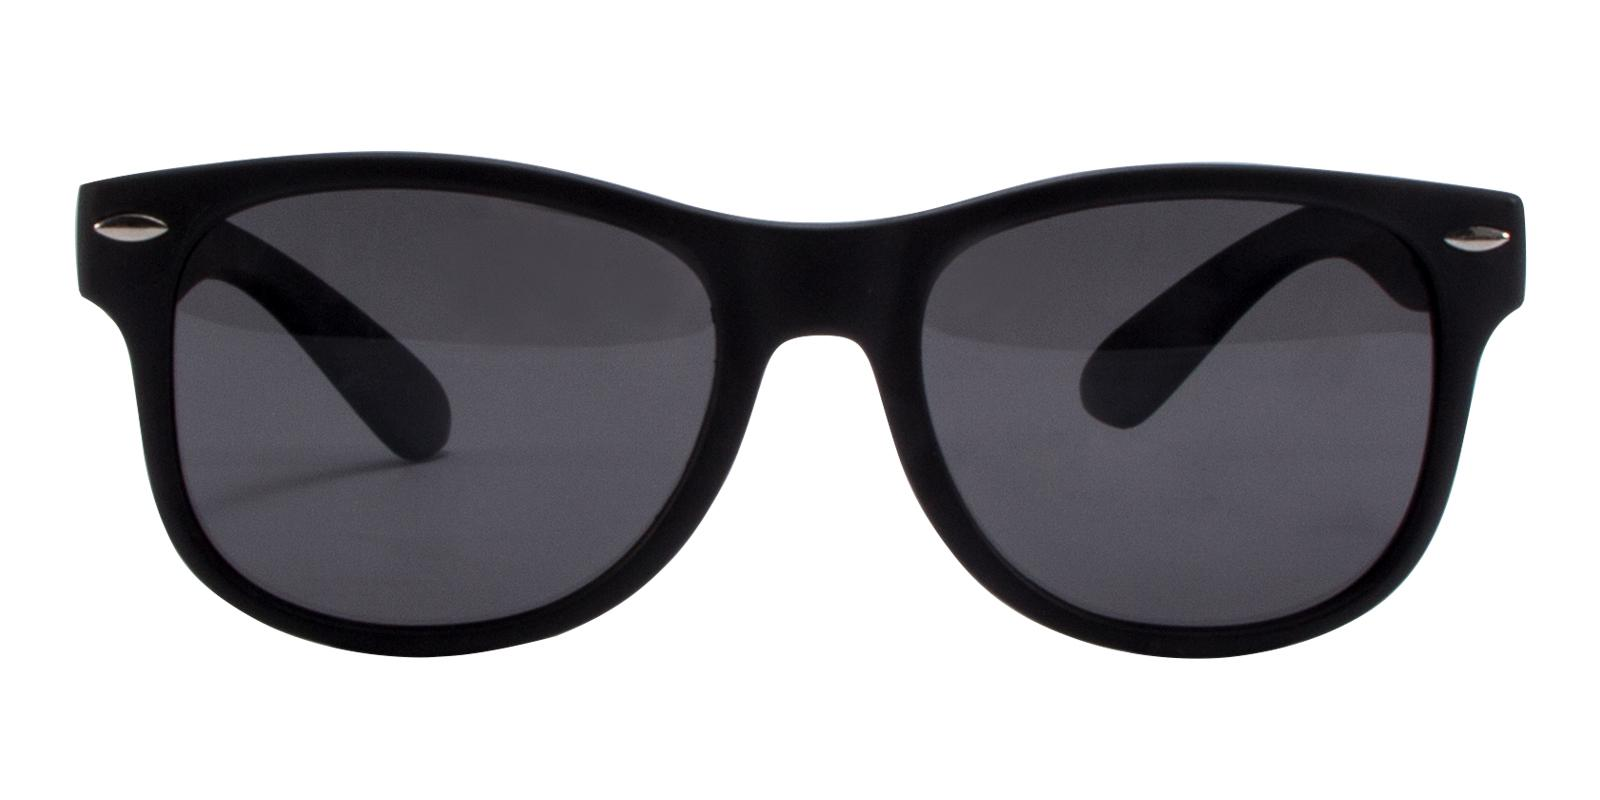 Ariel Black TR Sunglasses Frames from ABBE Glasses